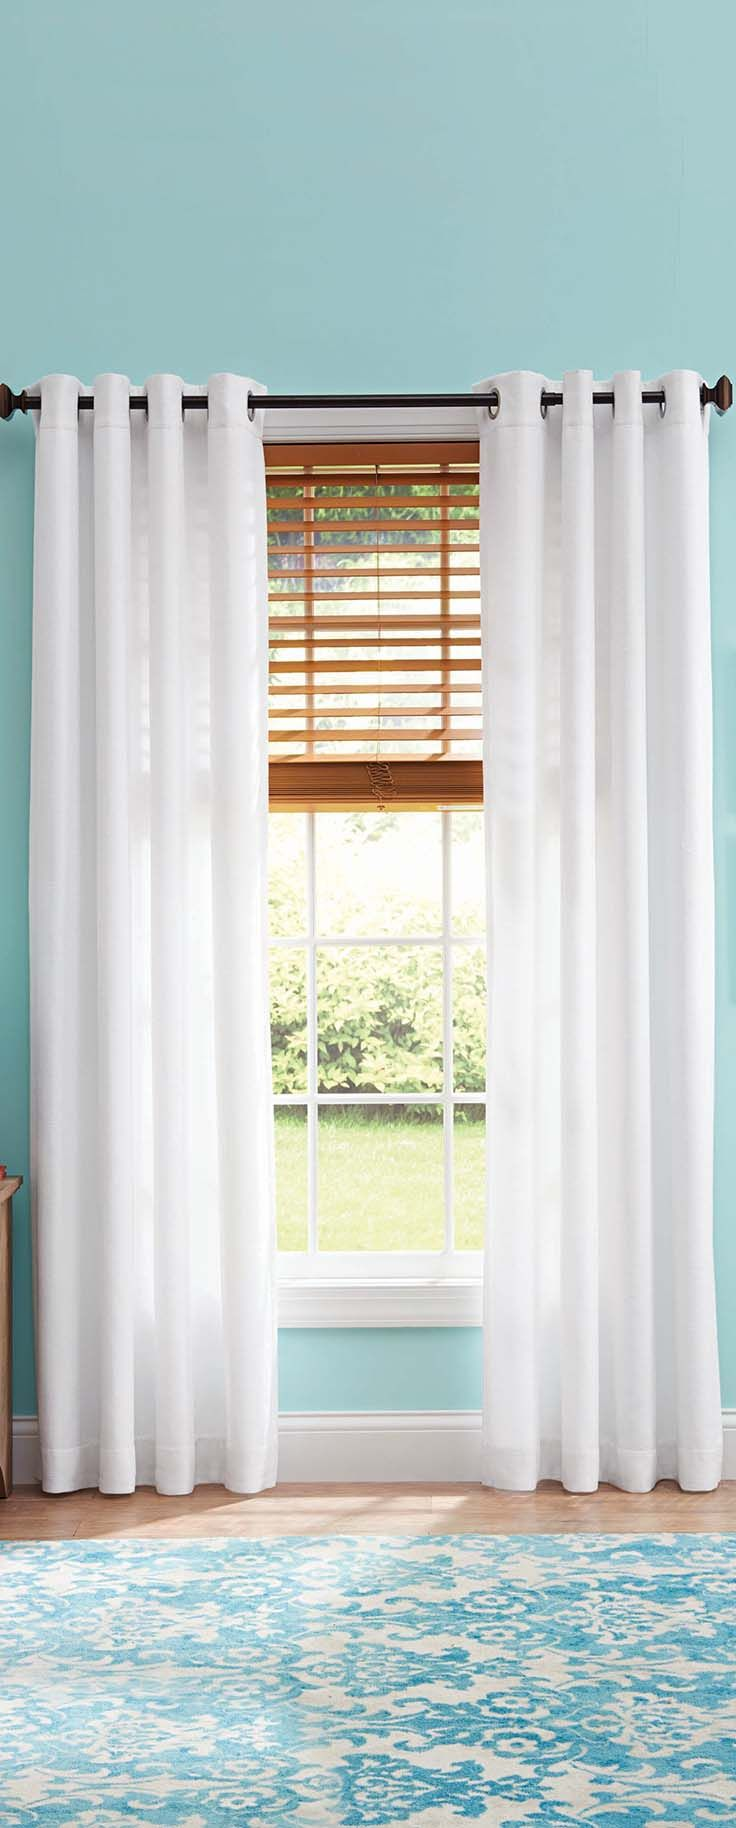 Shop For Better Homes And Gardens Curtains U0026 Window Treatments In Decor.  Buy Products Such As Better Homes And Gardens Semi Sheer Grommet Curtain  Panel, ...